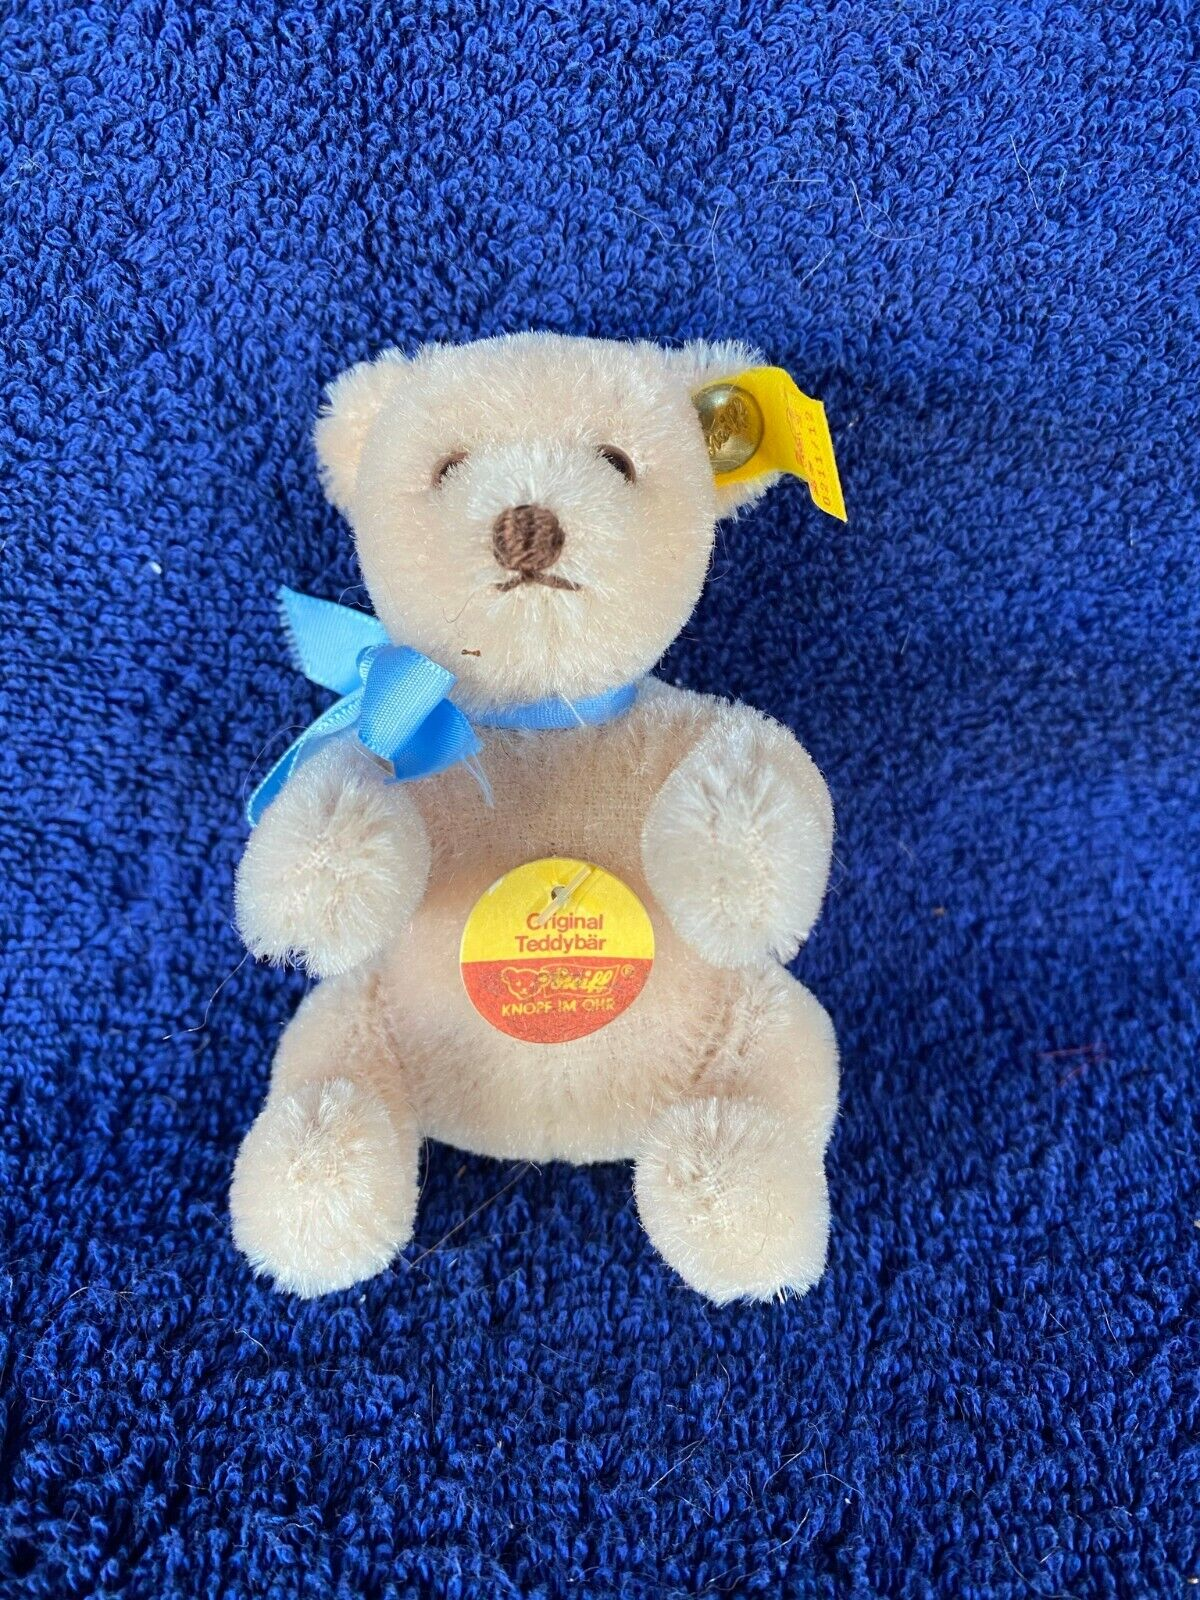 Steiff Mini 3.5 Teddy Bear, 0211/02, W/ Button, Tags - $15.00